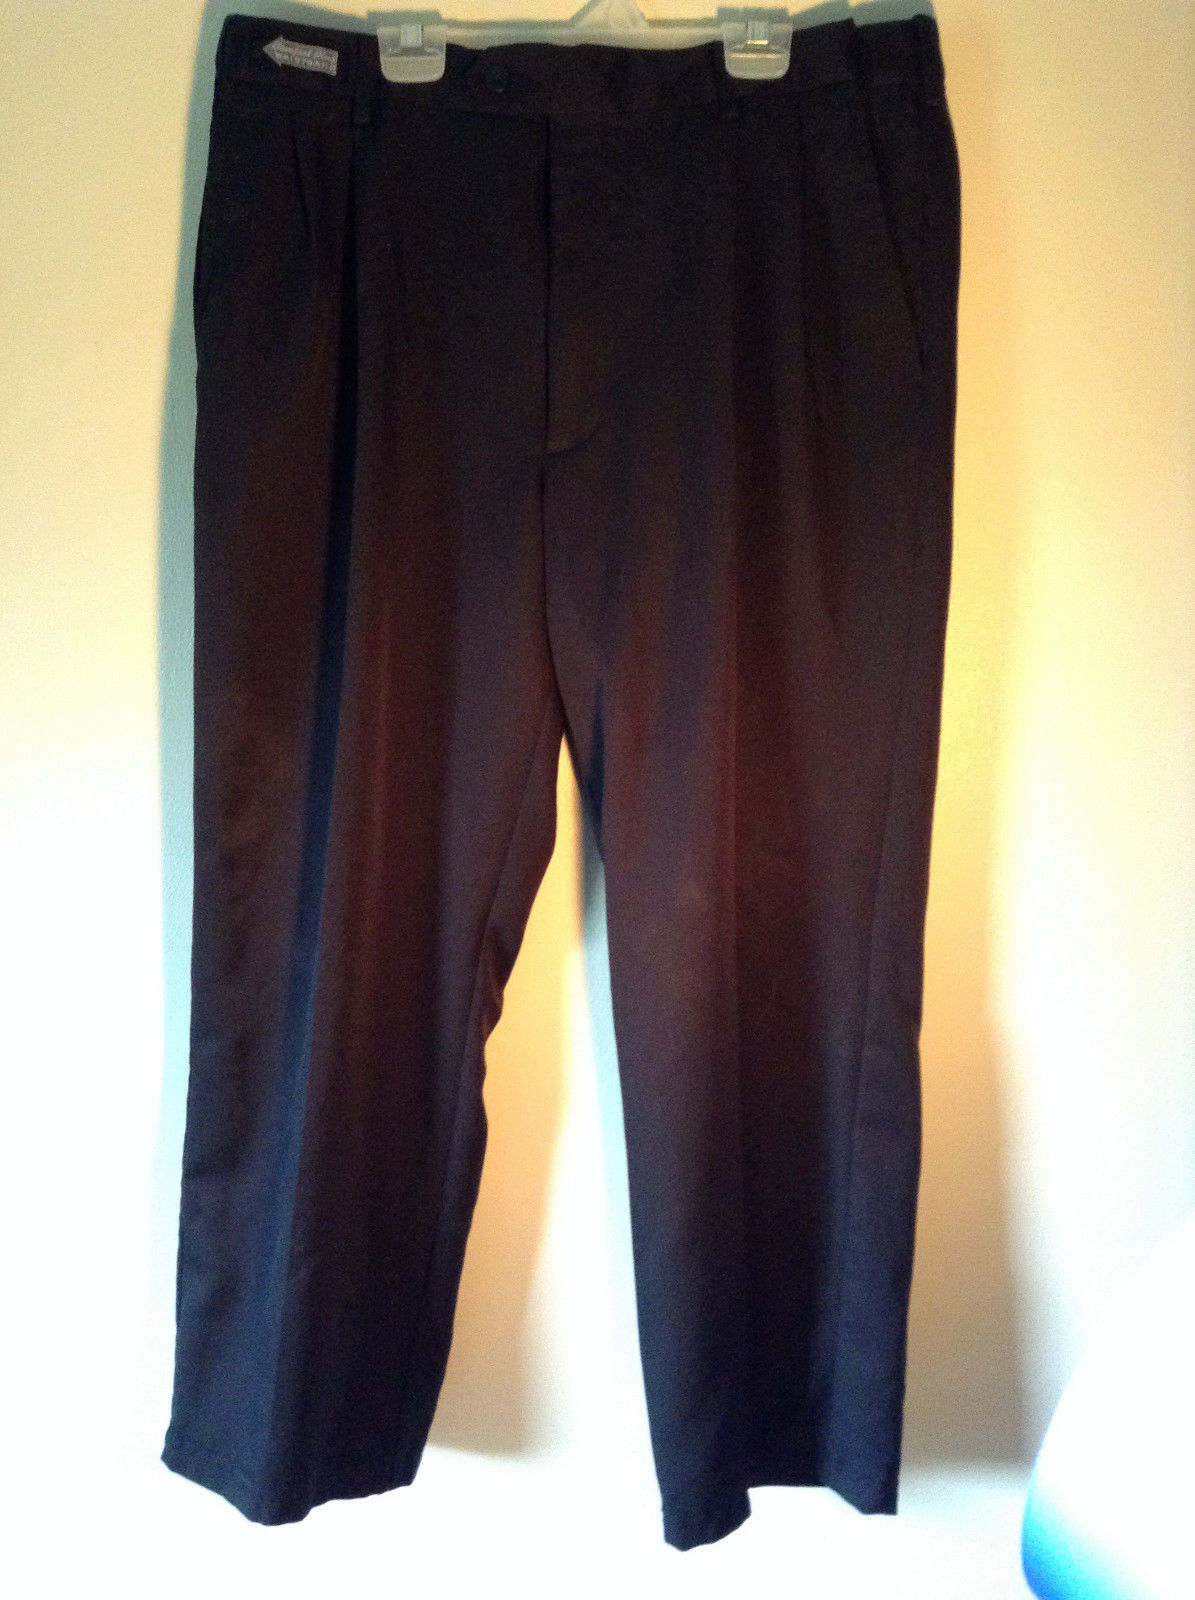 Savane Black Dress Pants  Comfort Plus Waistband Size 36W by 29L